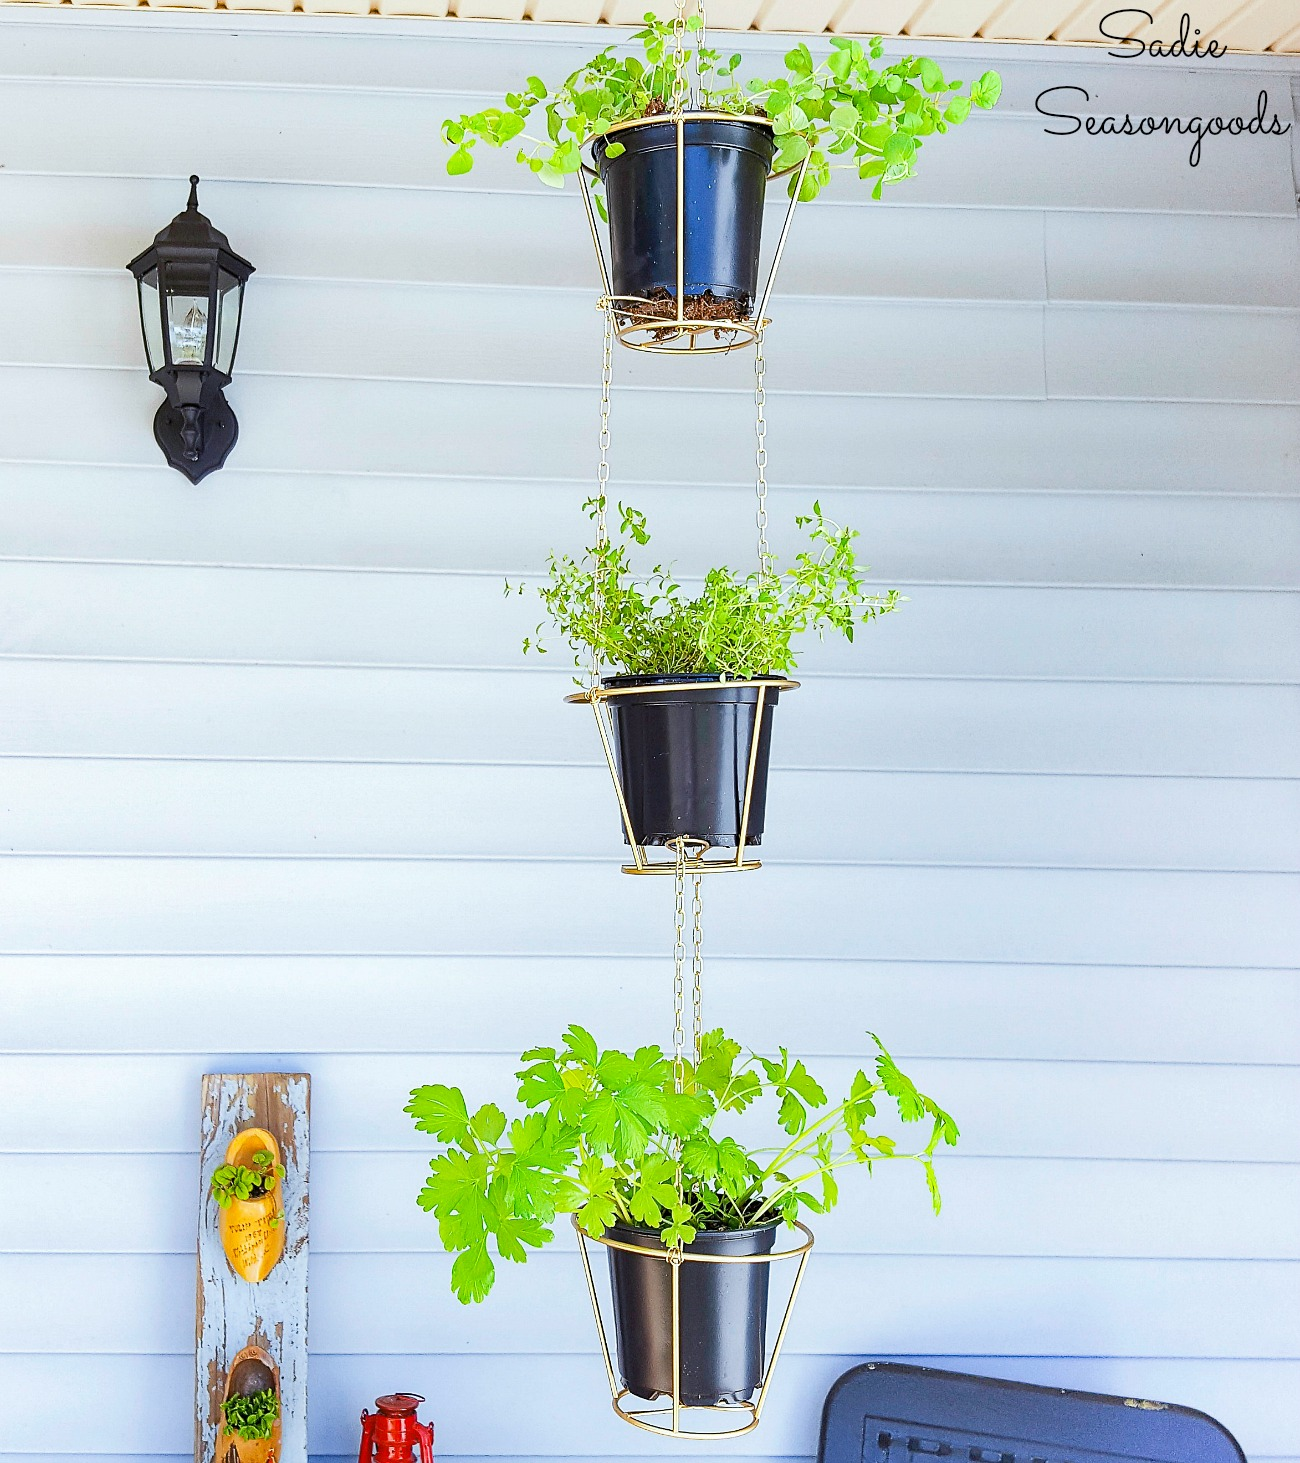 Wire hanging baskets for a vertical herb planter by upcycling the lampshade frames